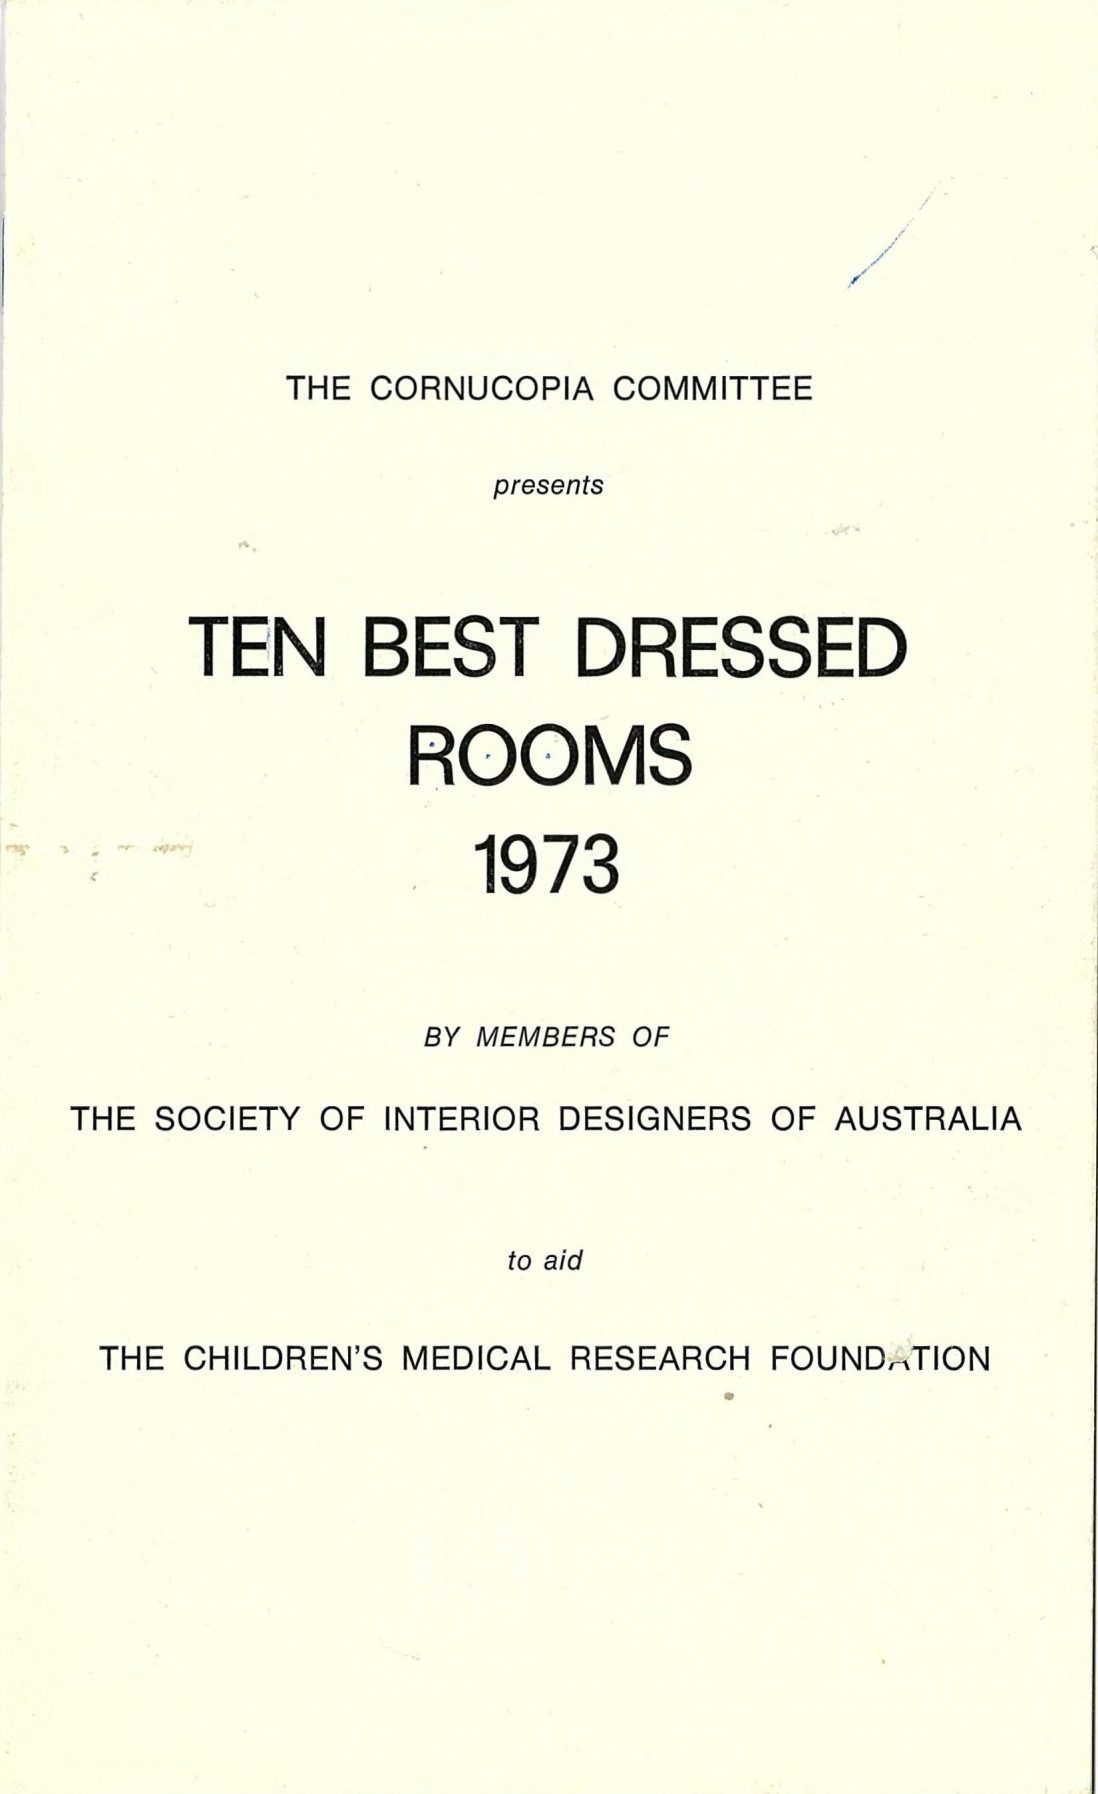 Ten best dressed rooms 1973